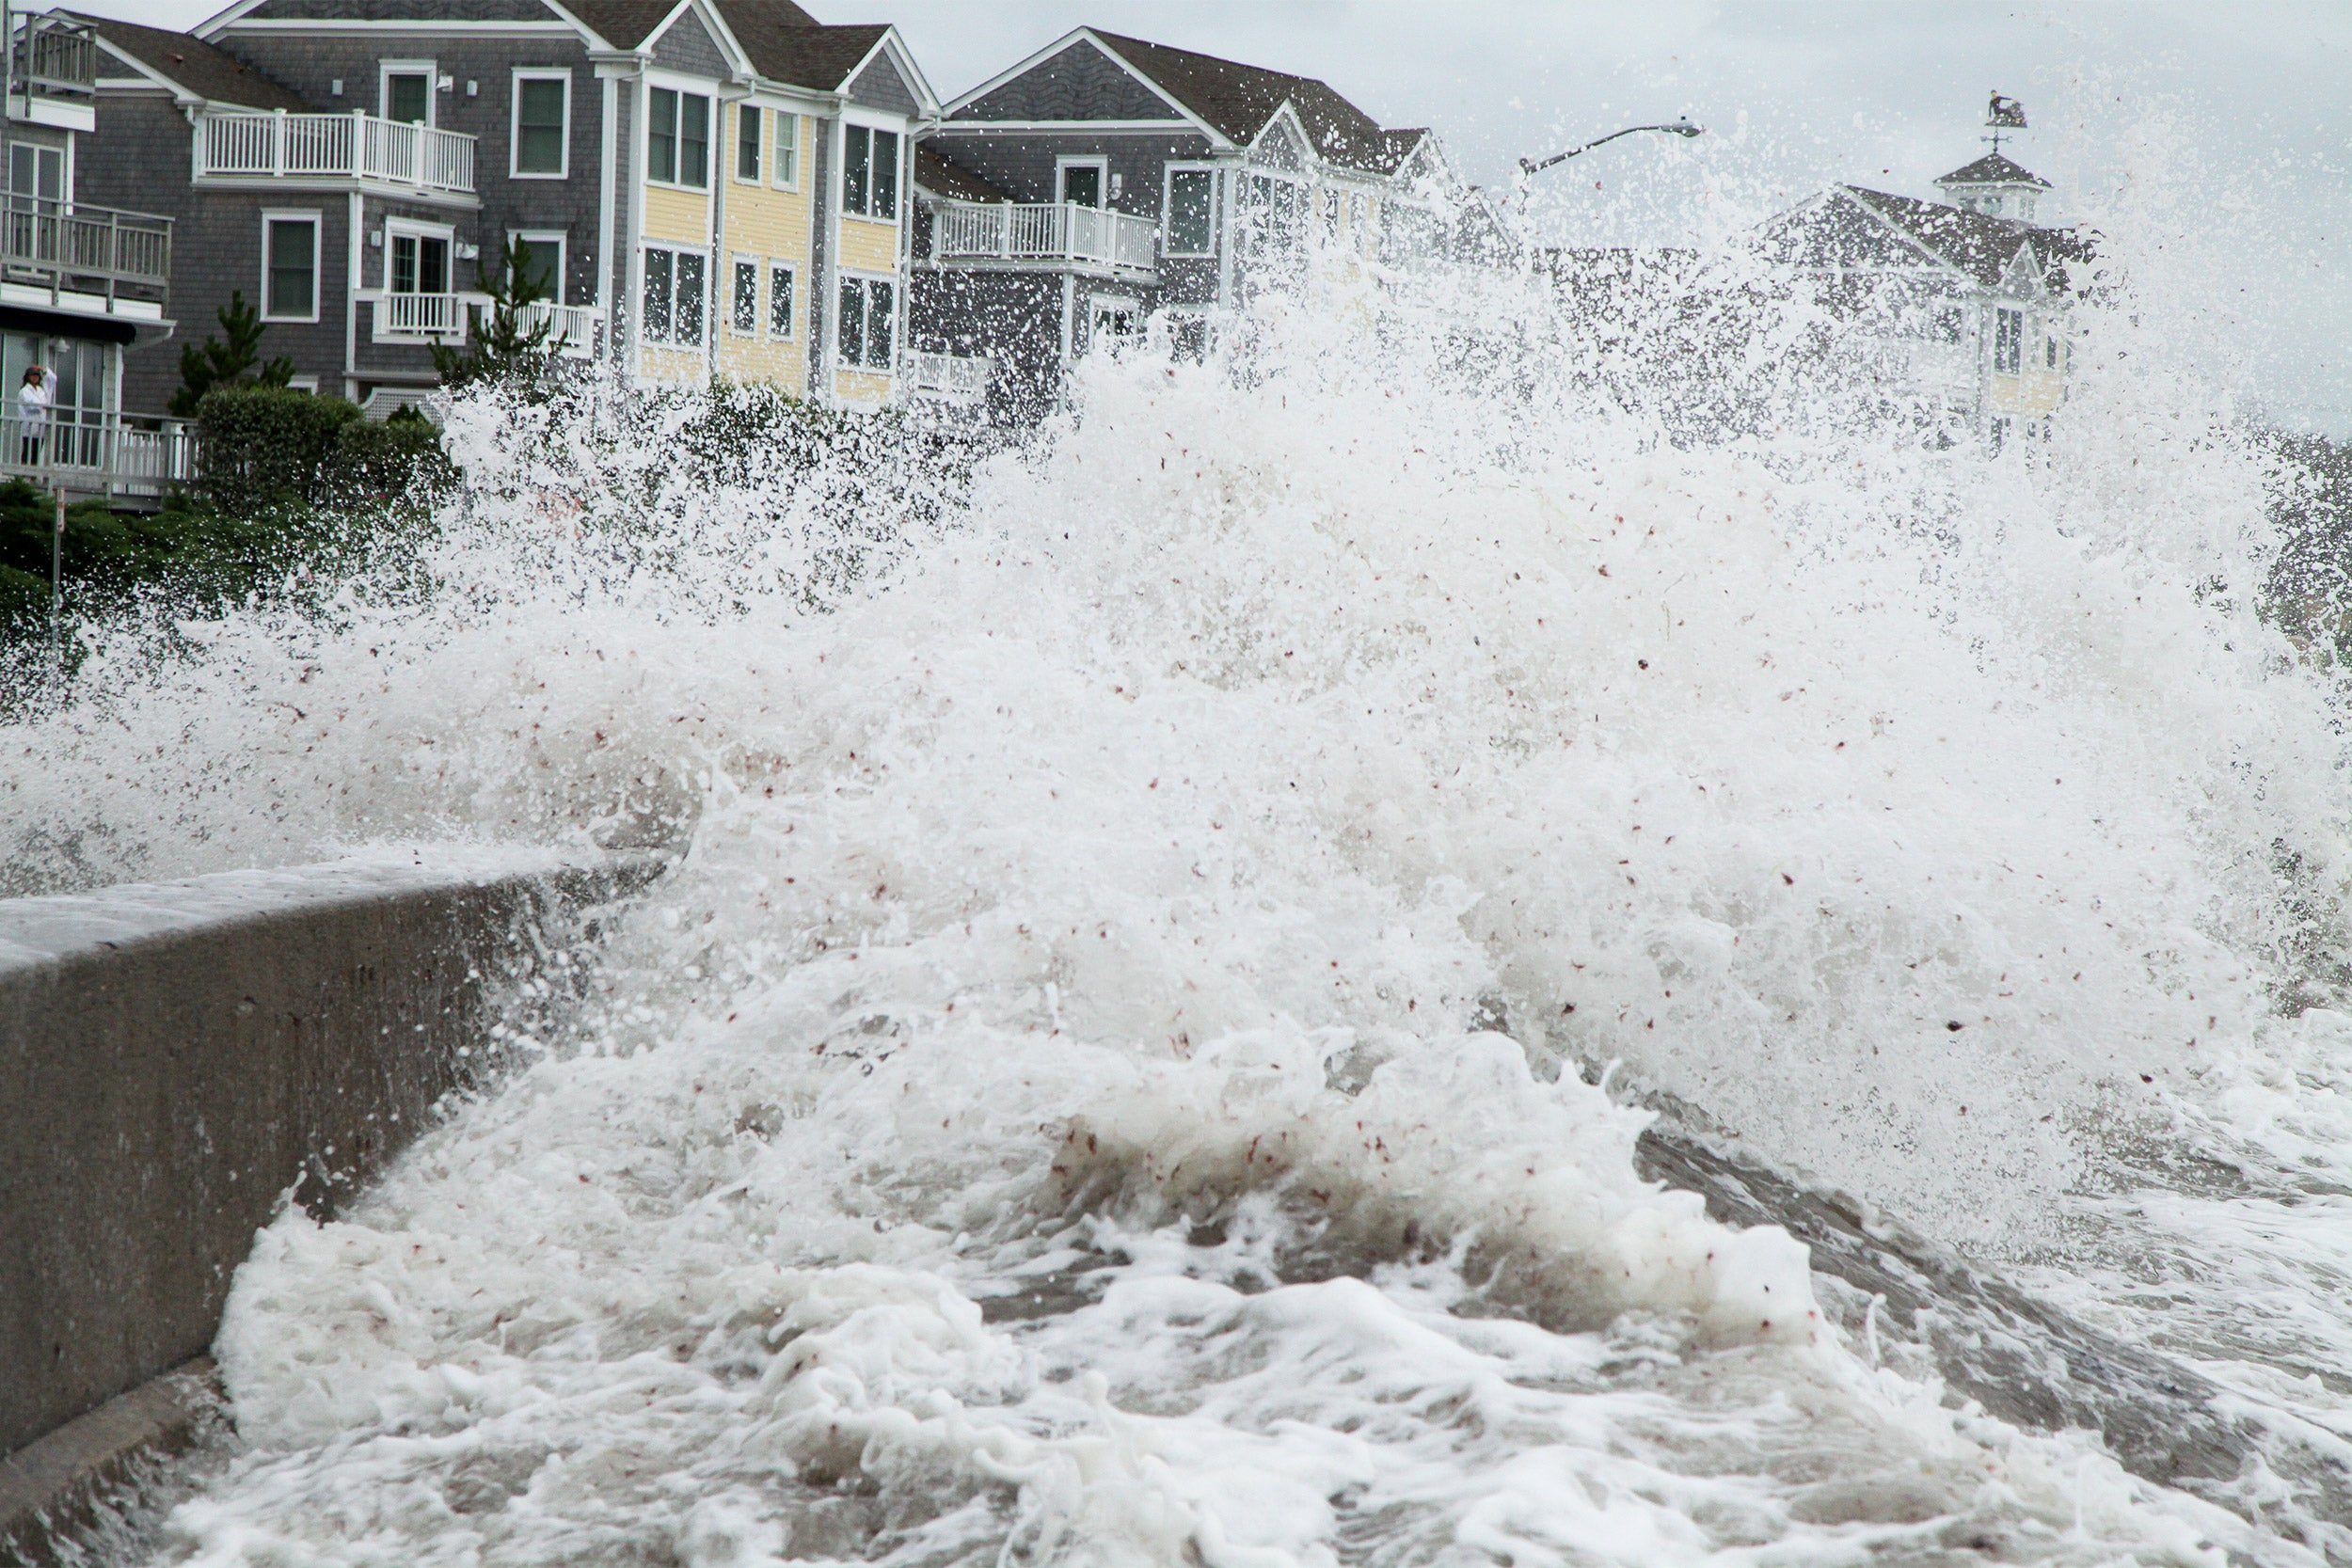 Making a case for 'managed retreat' from areas prone to flooding and storms